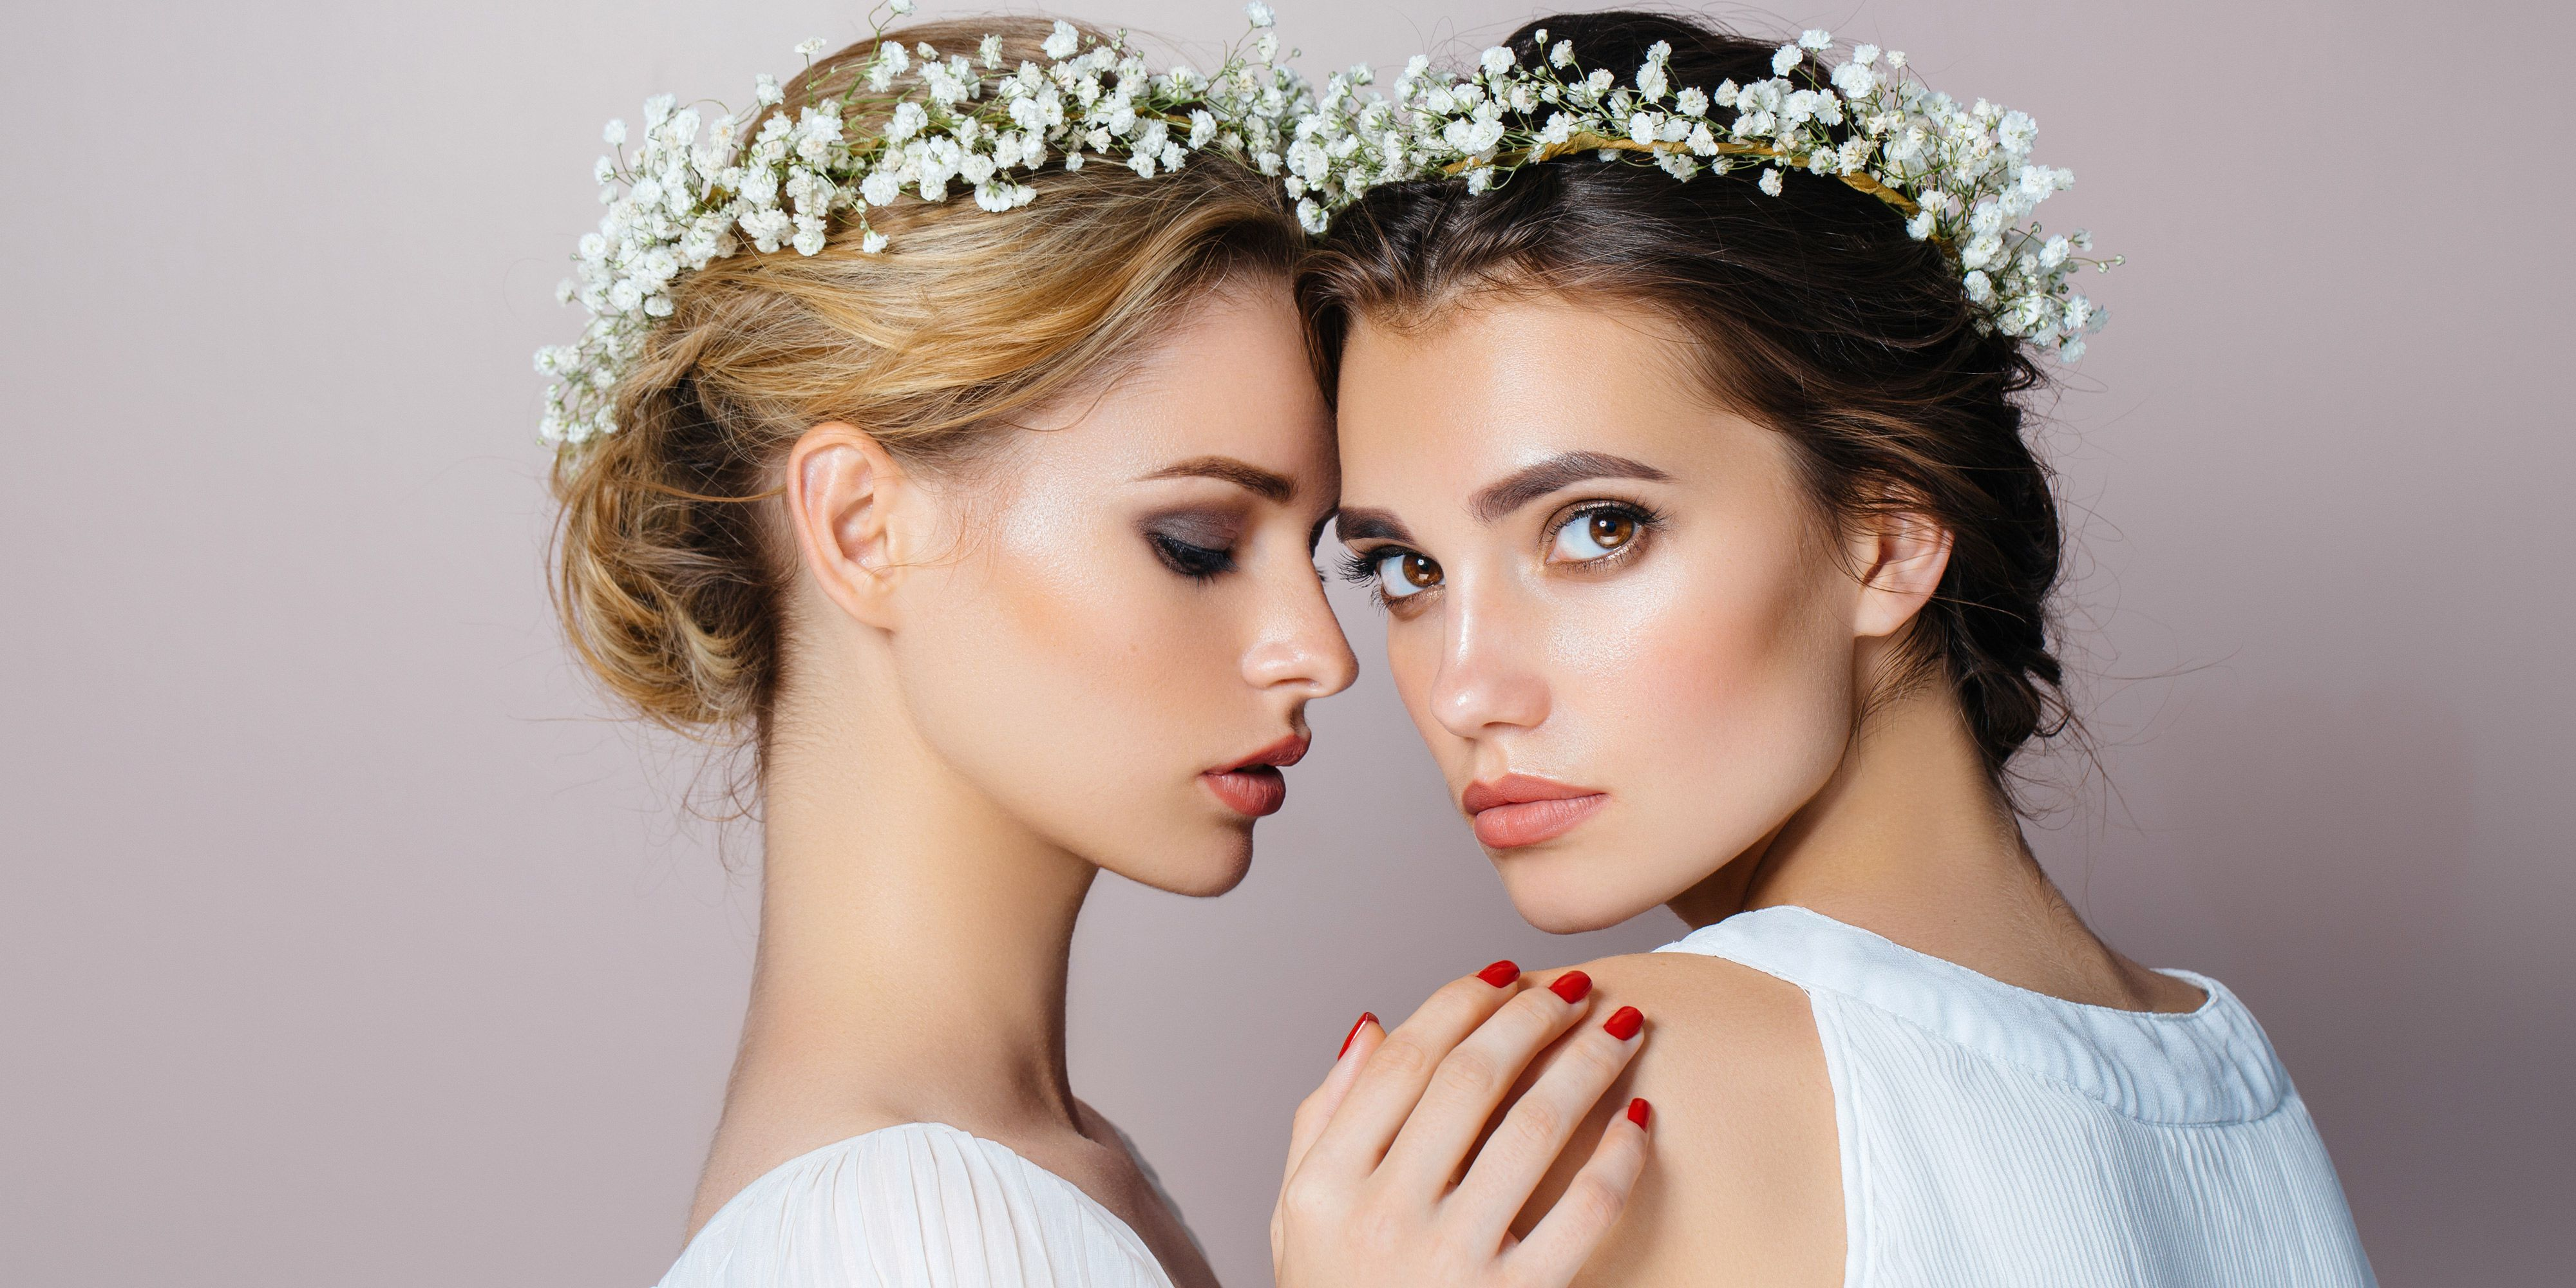 Make-up, hairstyles, manicure: a selection of news